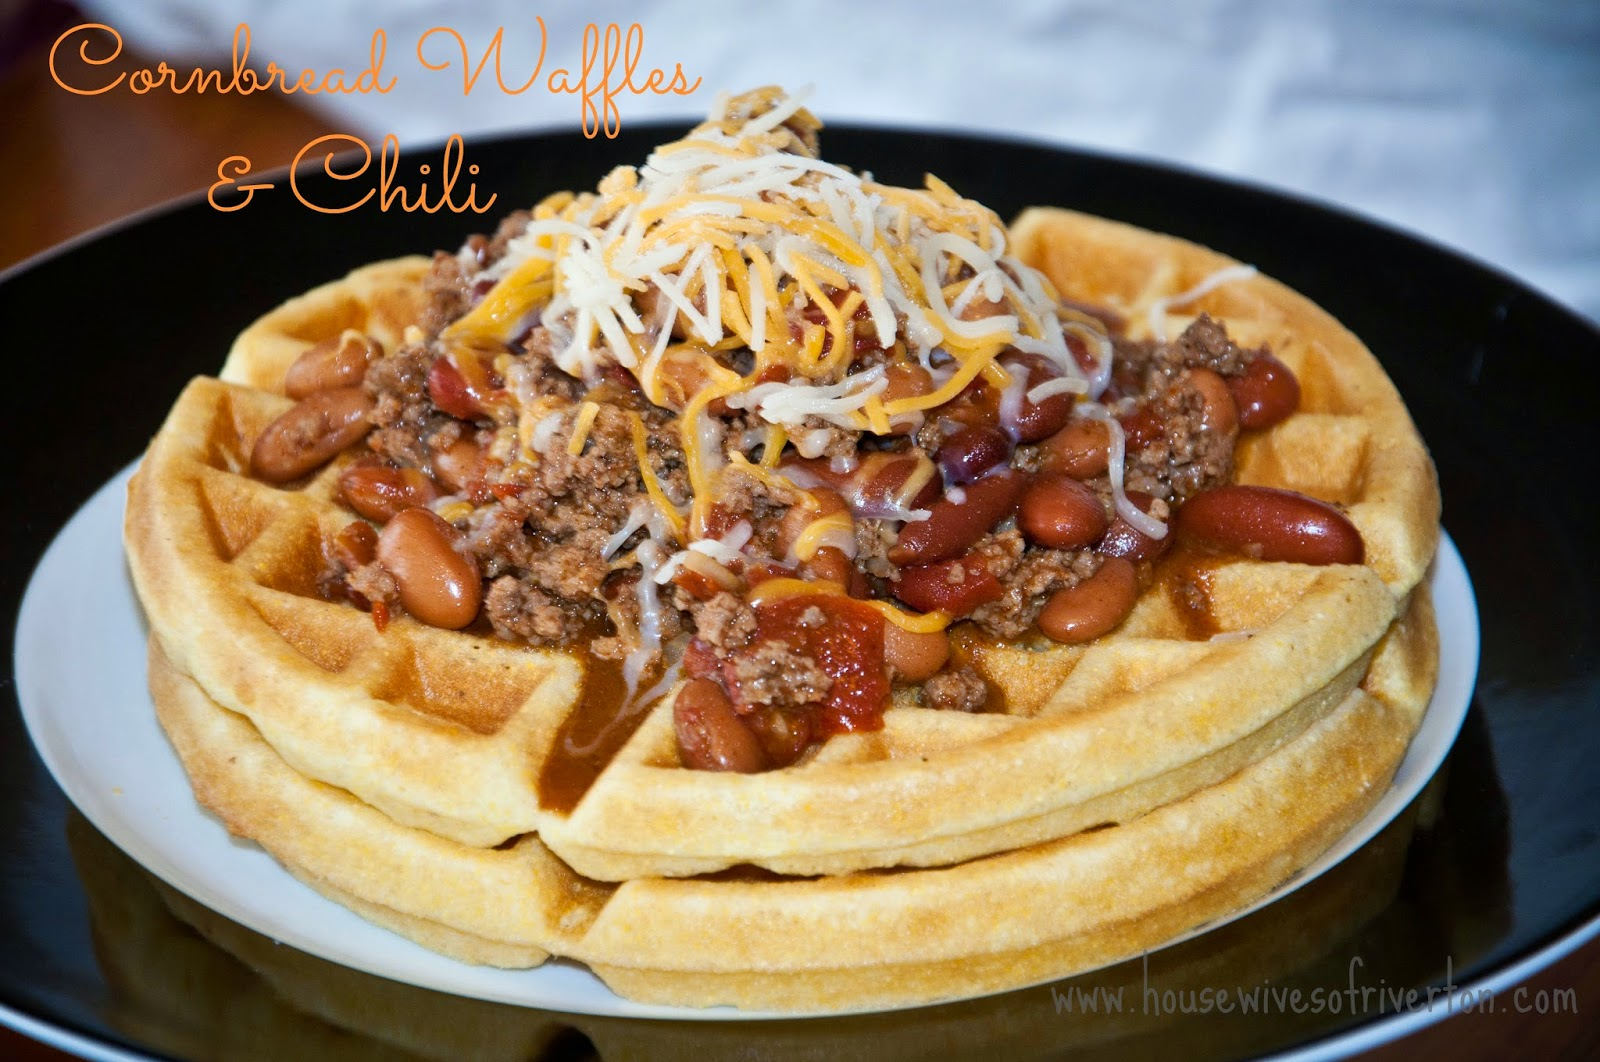 Cornbread Waffles and Chili